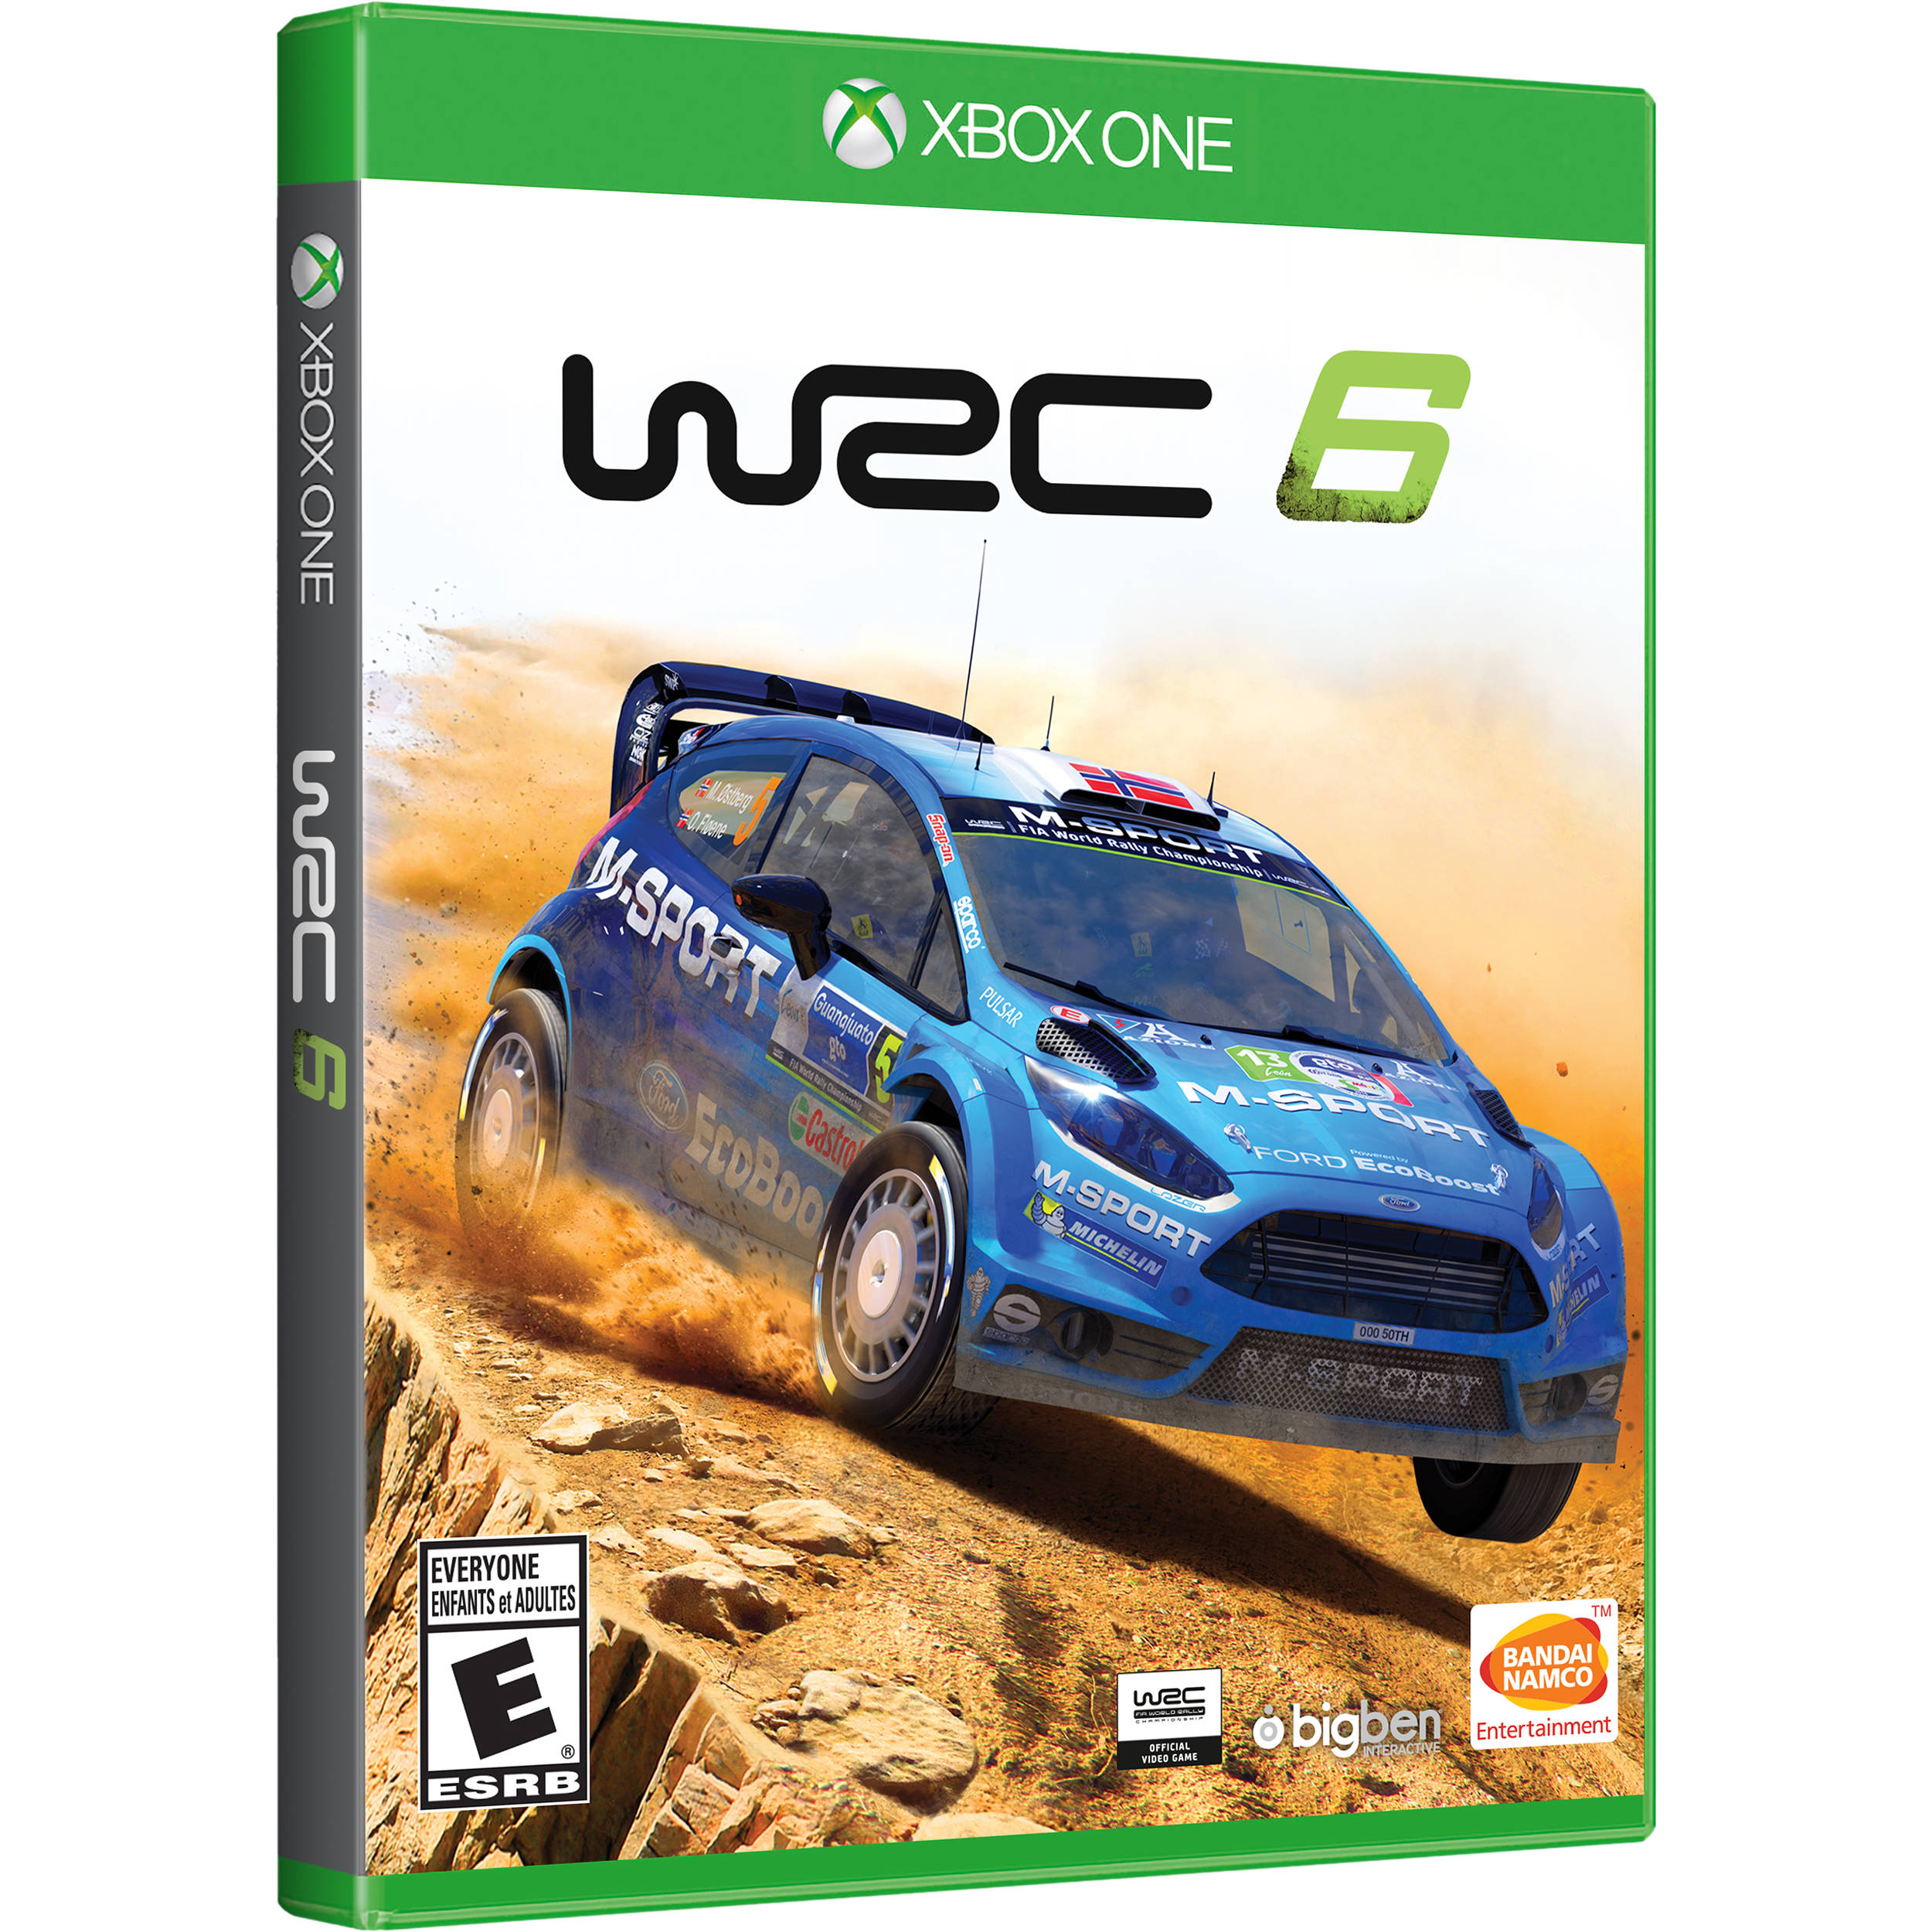 bandai namco wrc 6 xbox one 22082 b h photo video. Black Bedroom Furniture Sets. Home Design Ideas